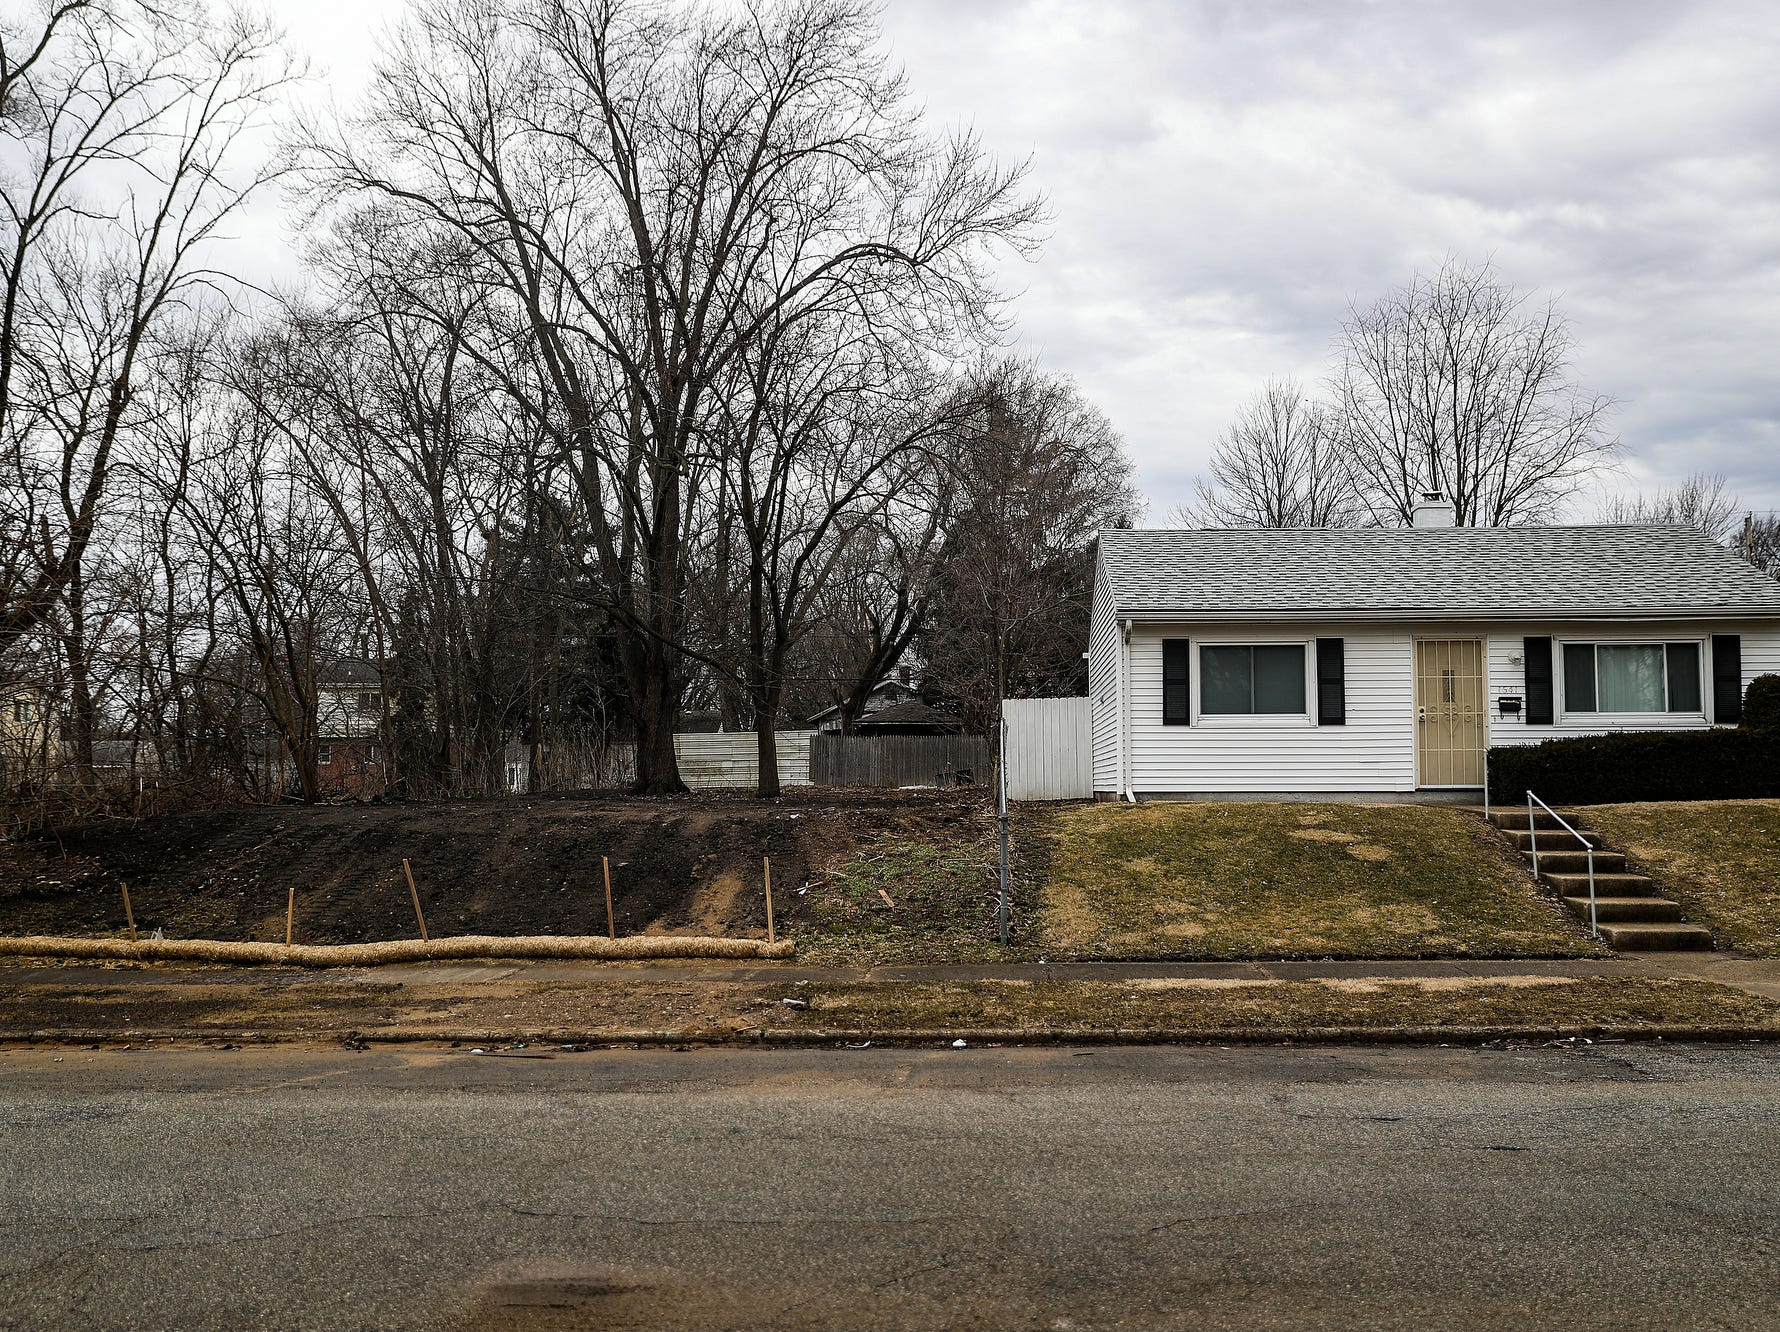 An empty lot is seen in Better Homes of South Bend, the first neighborhood built for African-Americans in South Bend, Ind. in the 1950s, seen on Wednesday, March 13, 2019. Some houses in the area were taken down as part of the city's initiative to demolish 1,000 vacant, abandoned or dilapidated houses in 1,000 days.